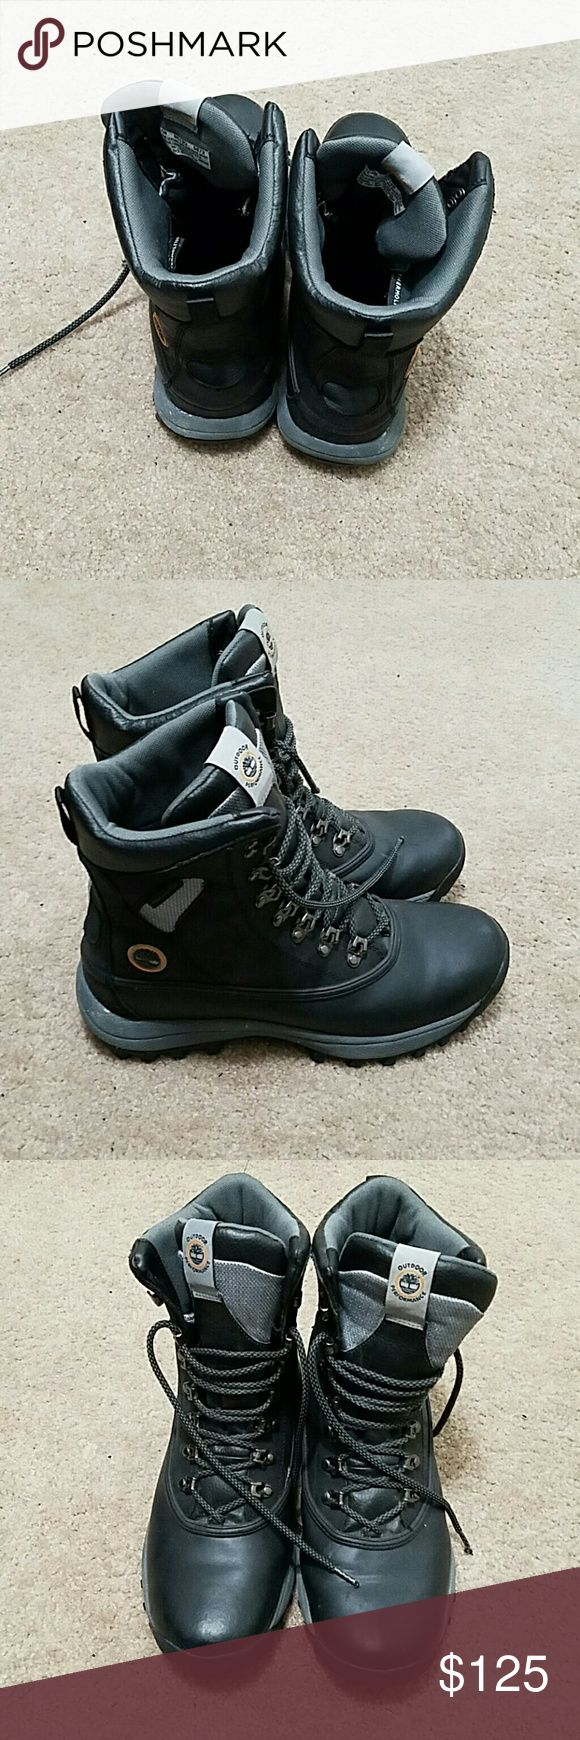 GORTEX Boots For sale or better offer Timberland Shoes Boots